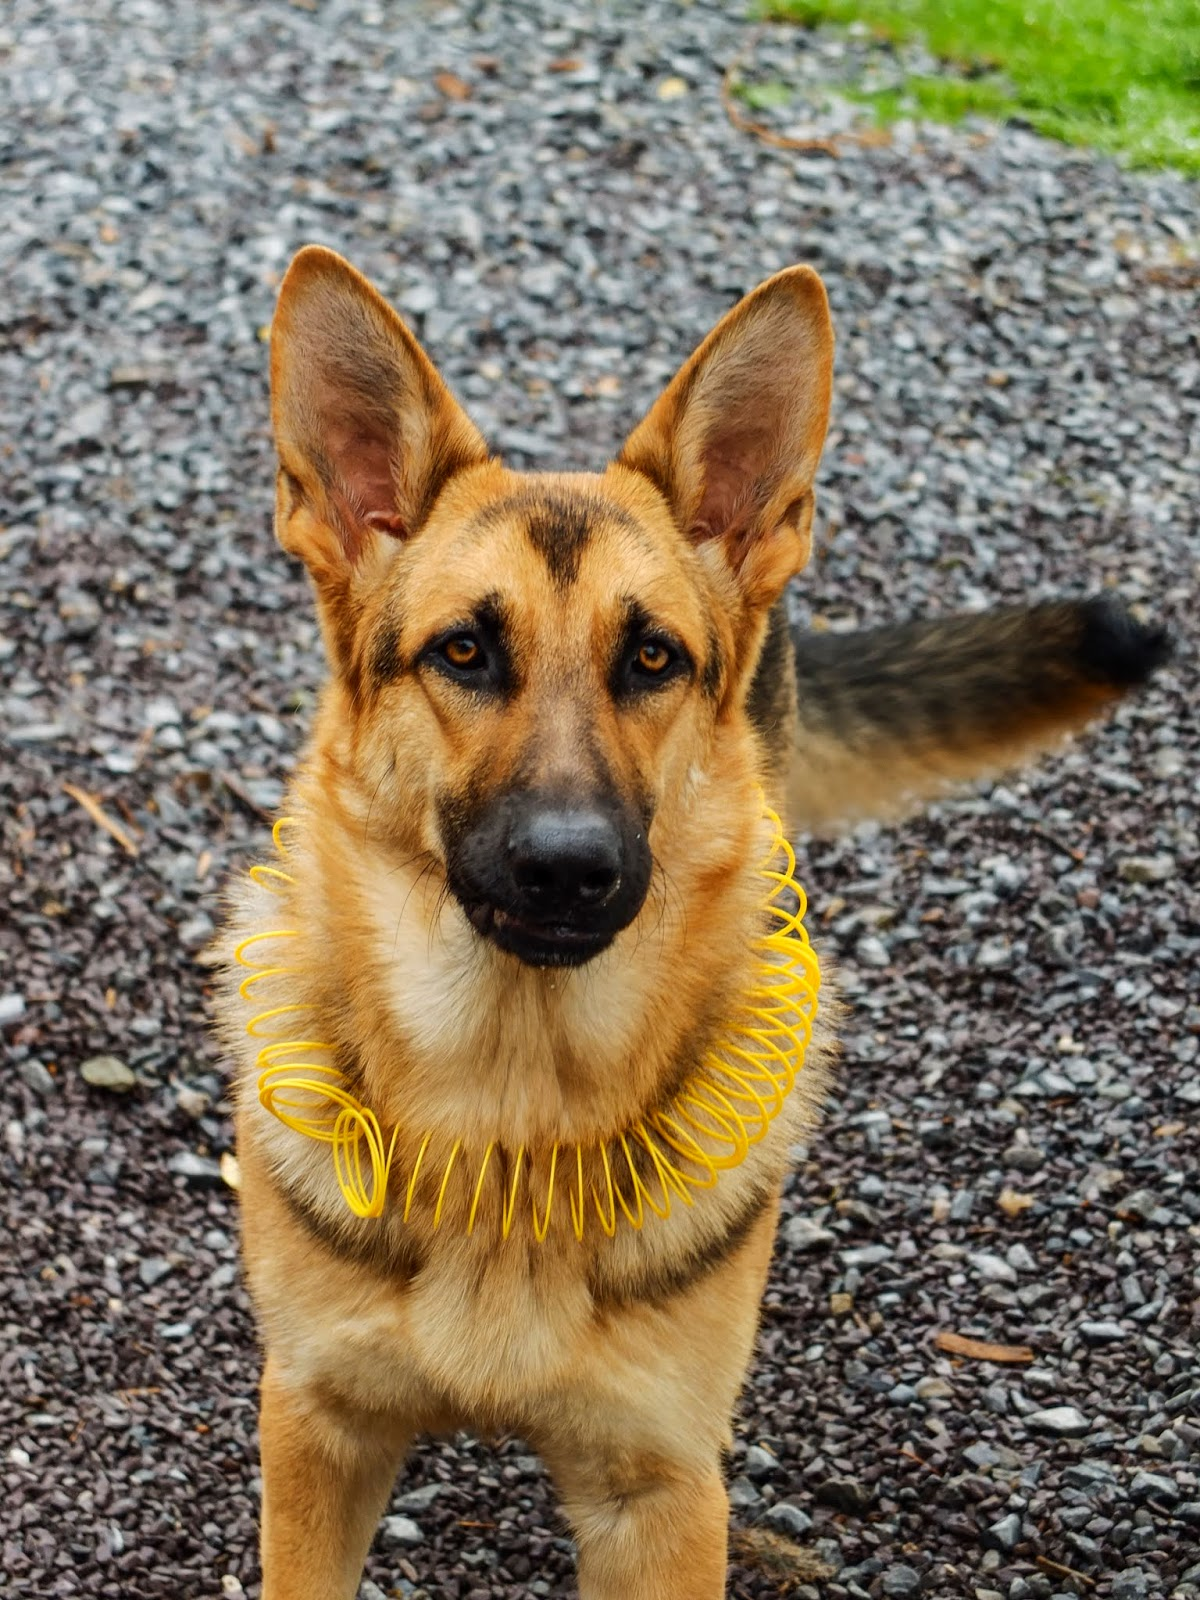 A 9 month old German Shepherd standing on gravel with a yellow slinky around her neck.